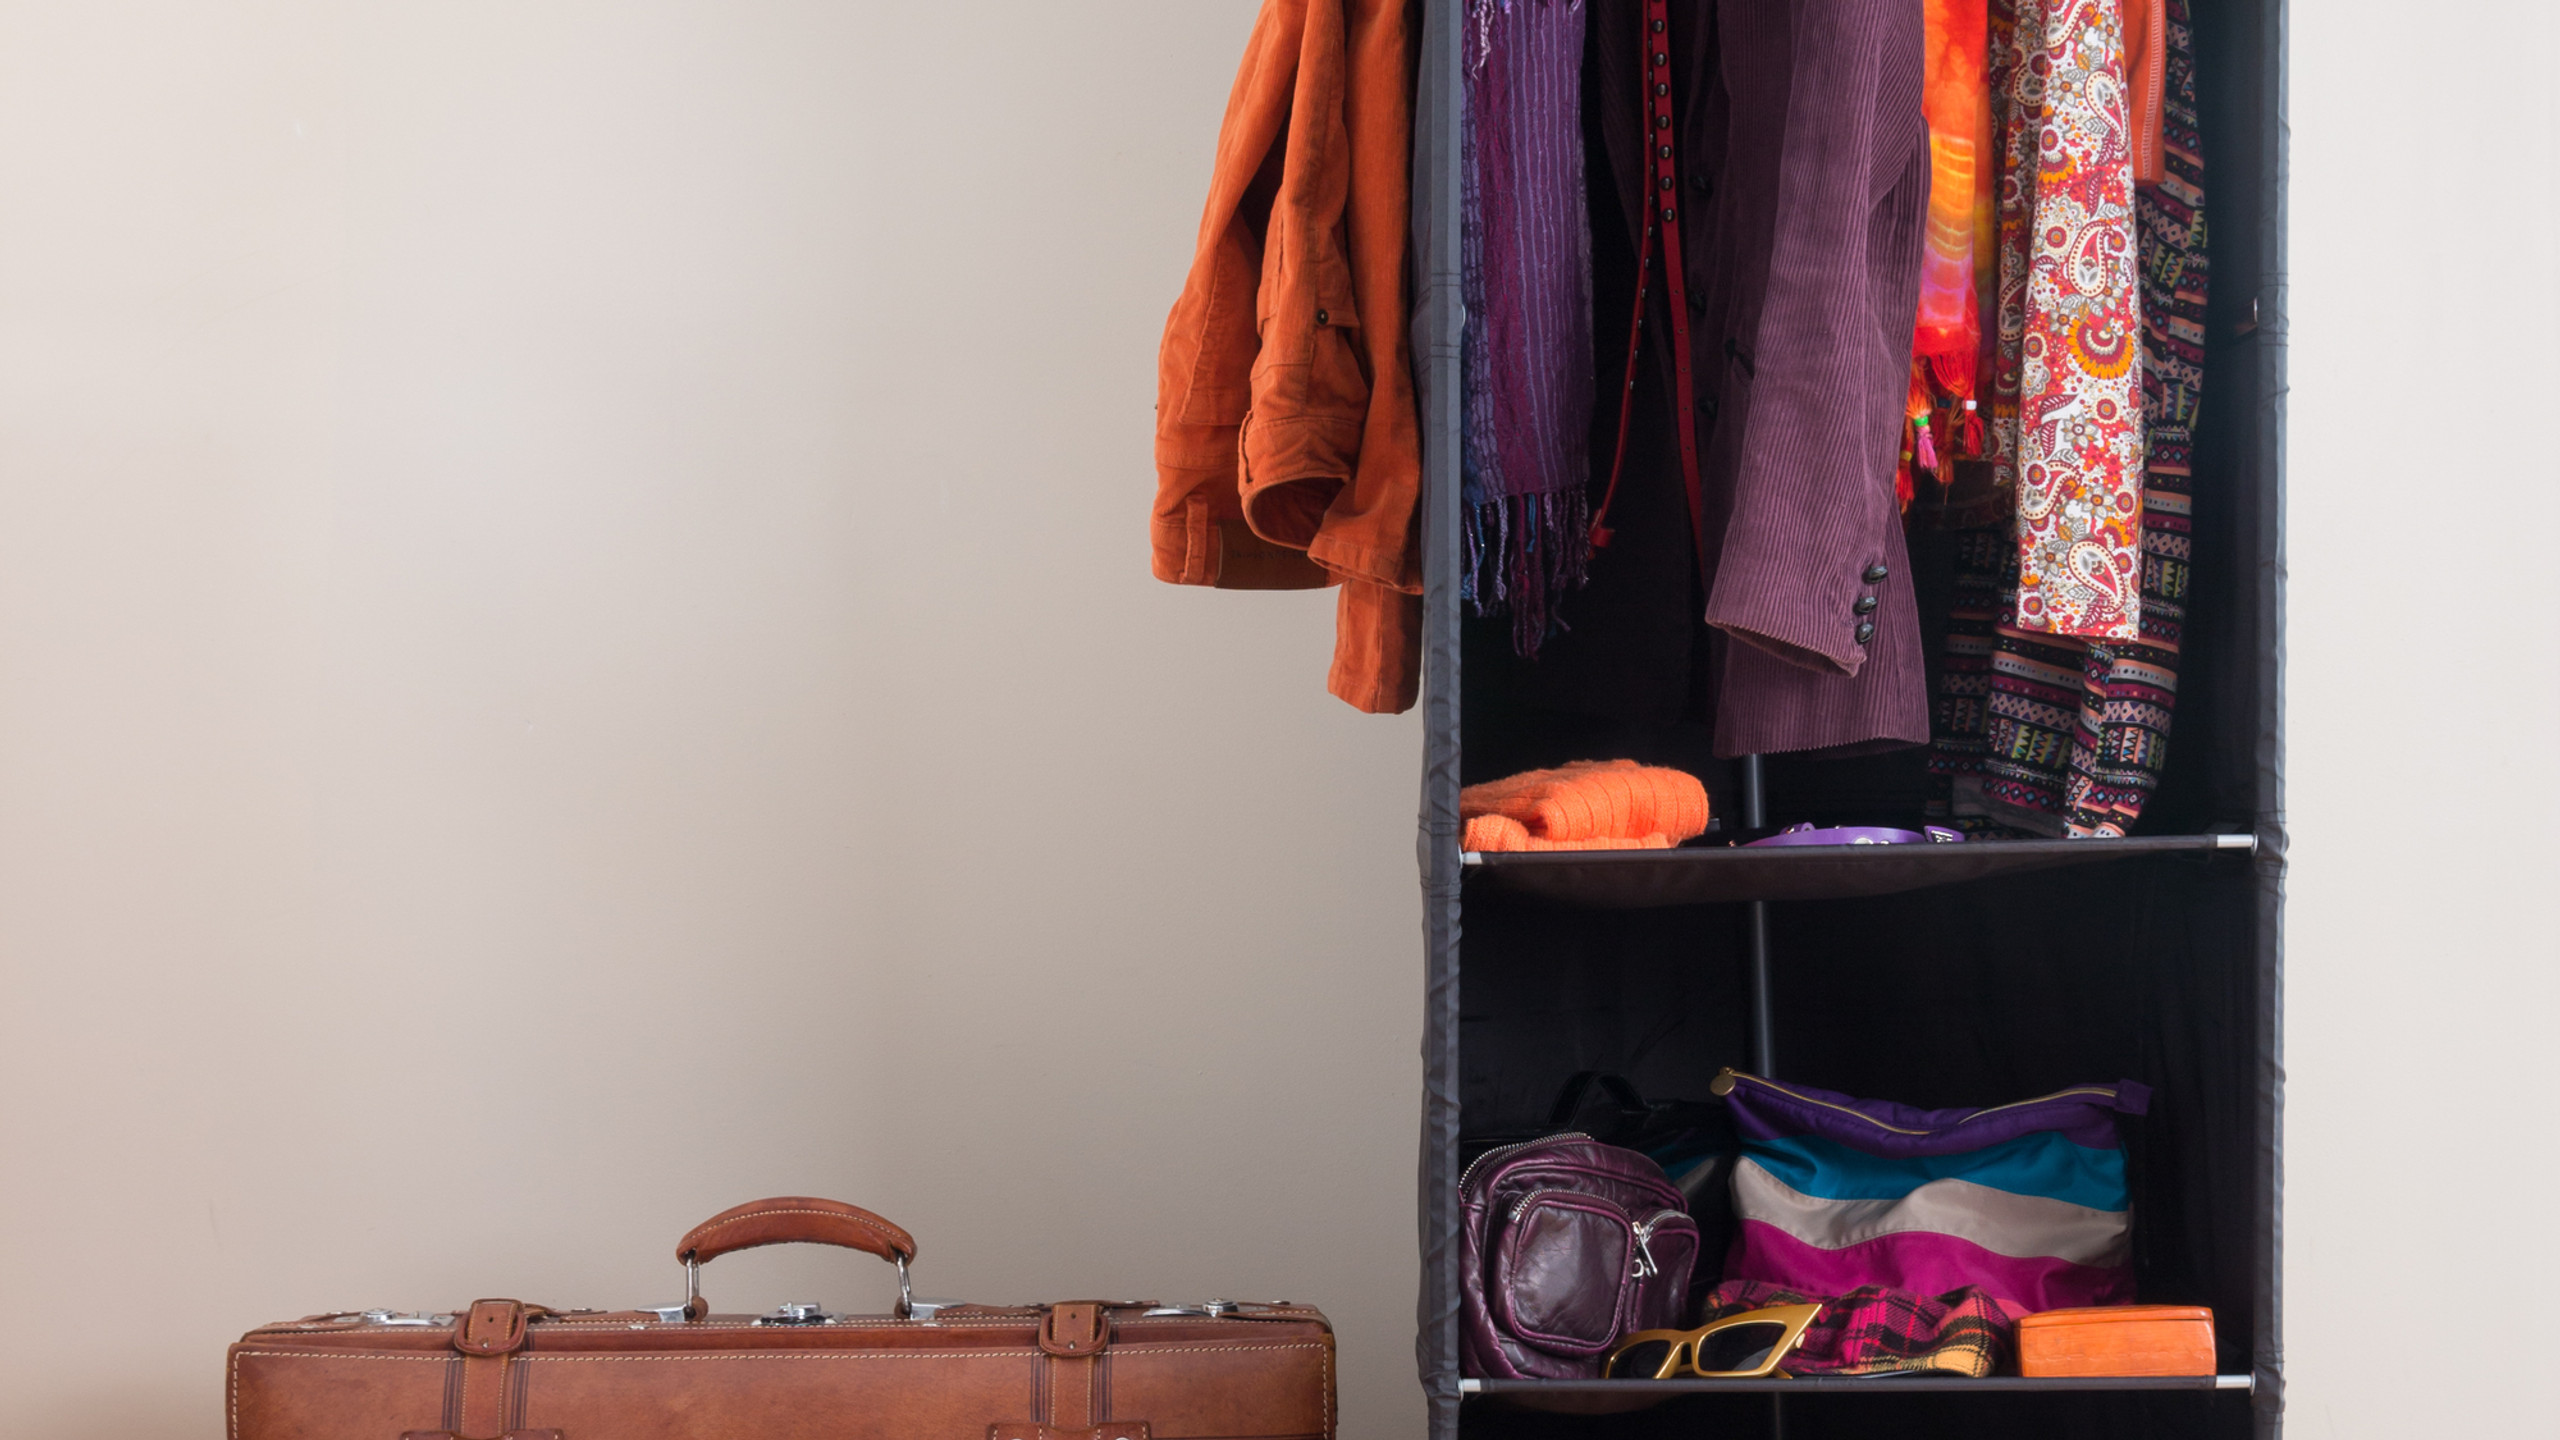 Give yourself enough space to recover from the trip -- a day or two before returning to work.